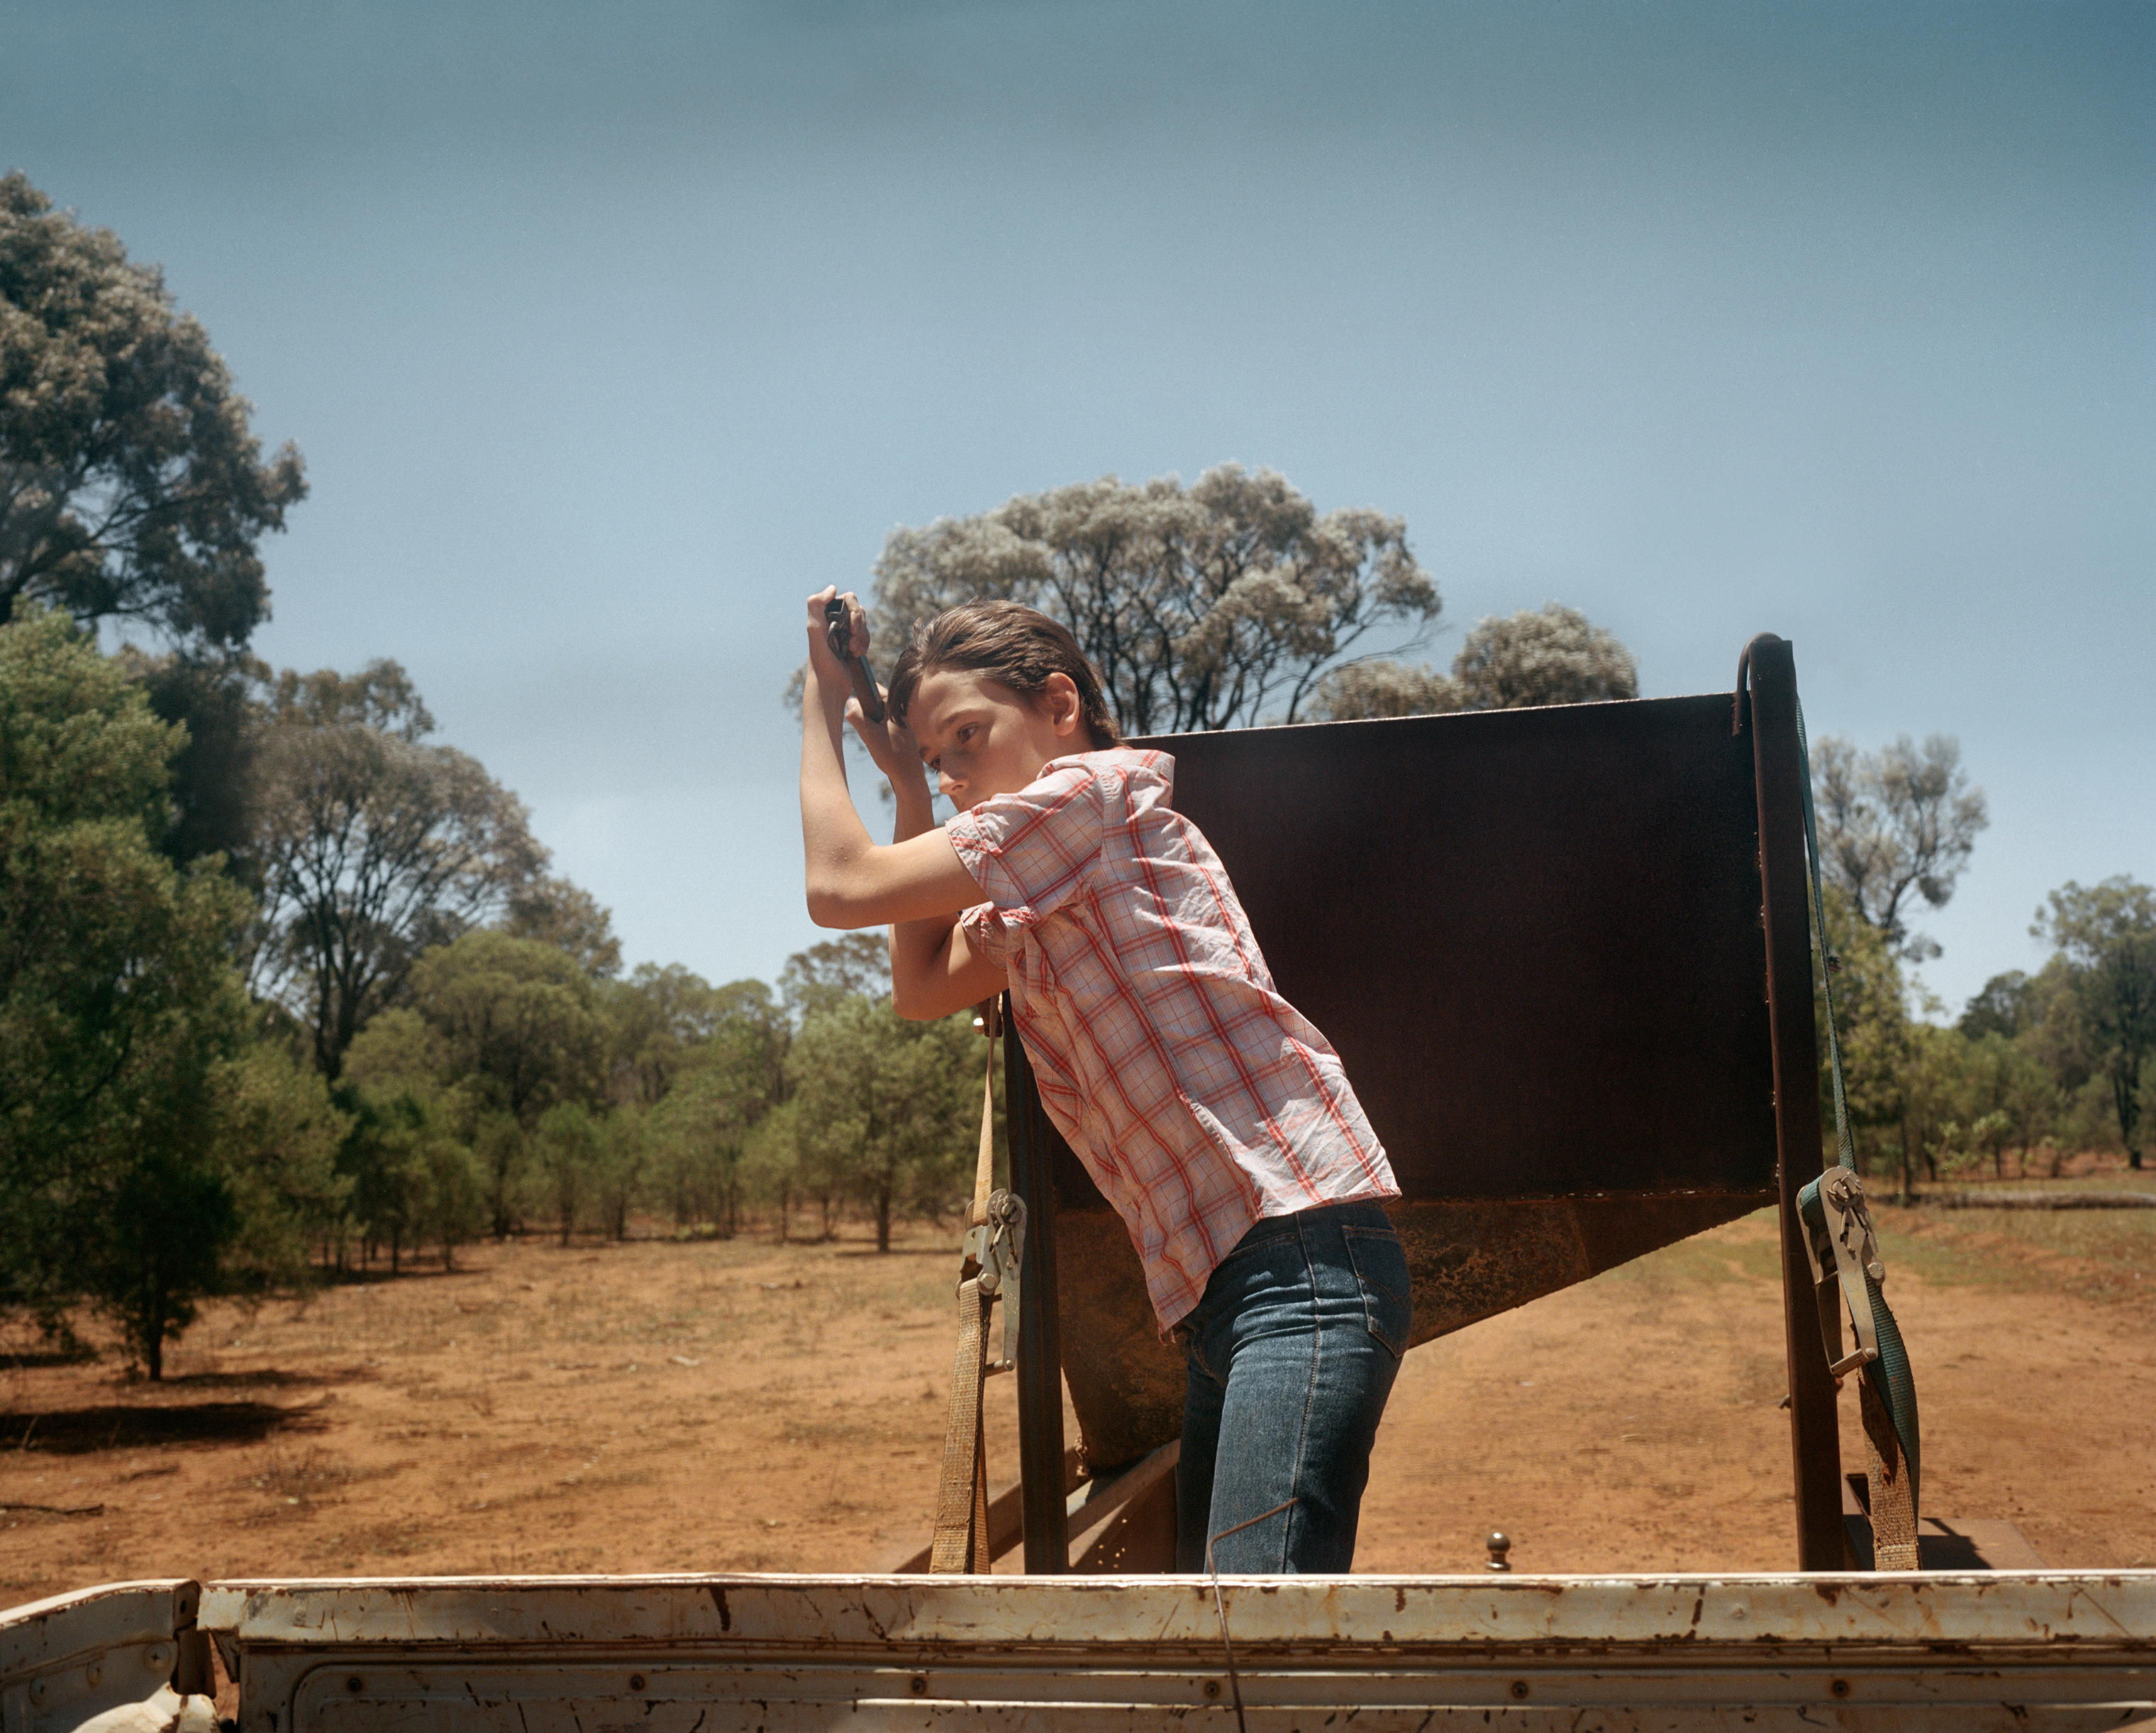 Nicholas Clark, 12, releases feed for sheep on Kandimulla Property in Queensland in November. Without an ability to grow food naturally, Kandimulla owner Kent Morris is forced to buy food to feed his livestock.